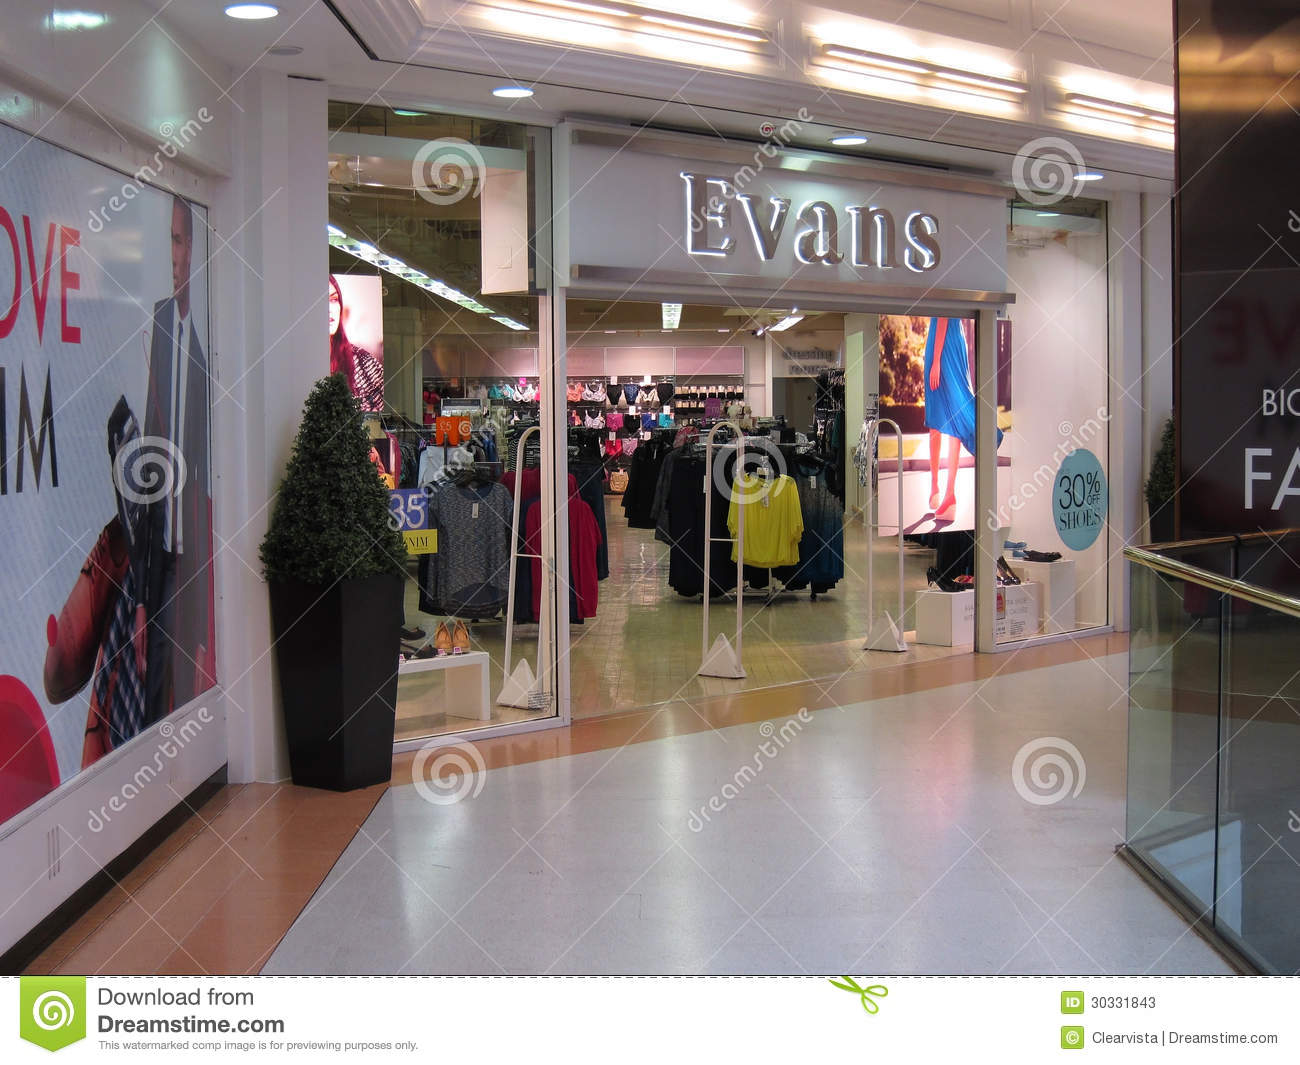 British clothing store